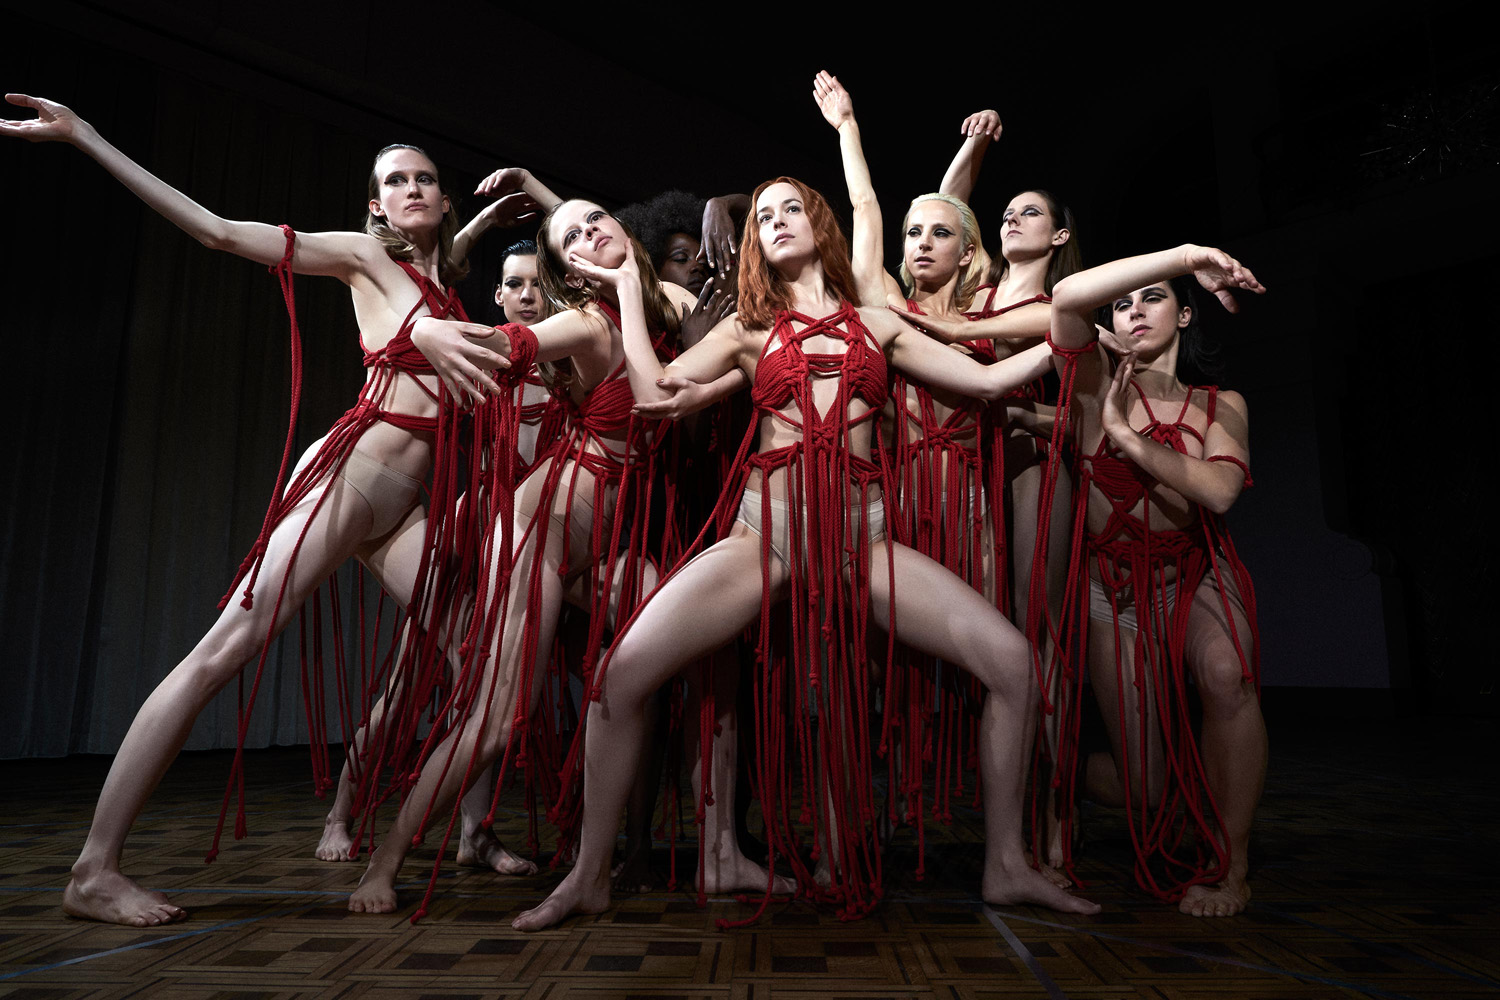 Dakota Johnson (center) and Mia Goth (center-left) star in SUSPIRIA. Photo: Alessio Bolzoni/Amazon Studios. Courtesy of Amazon Studios